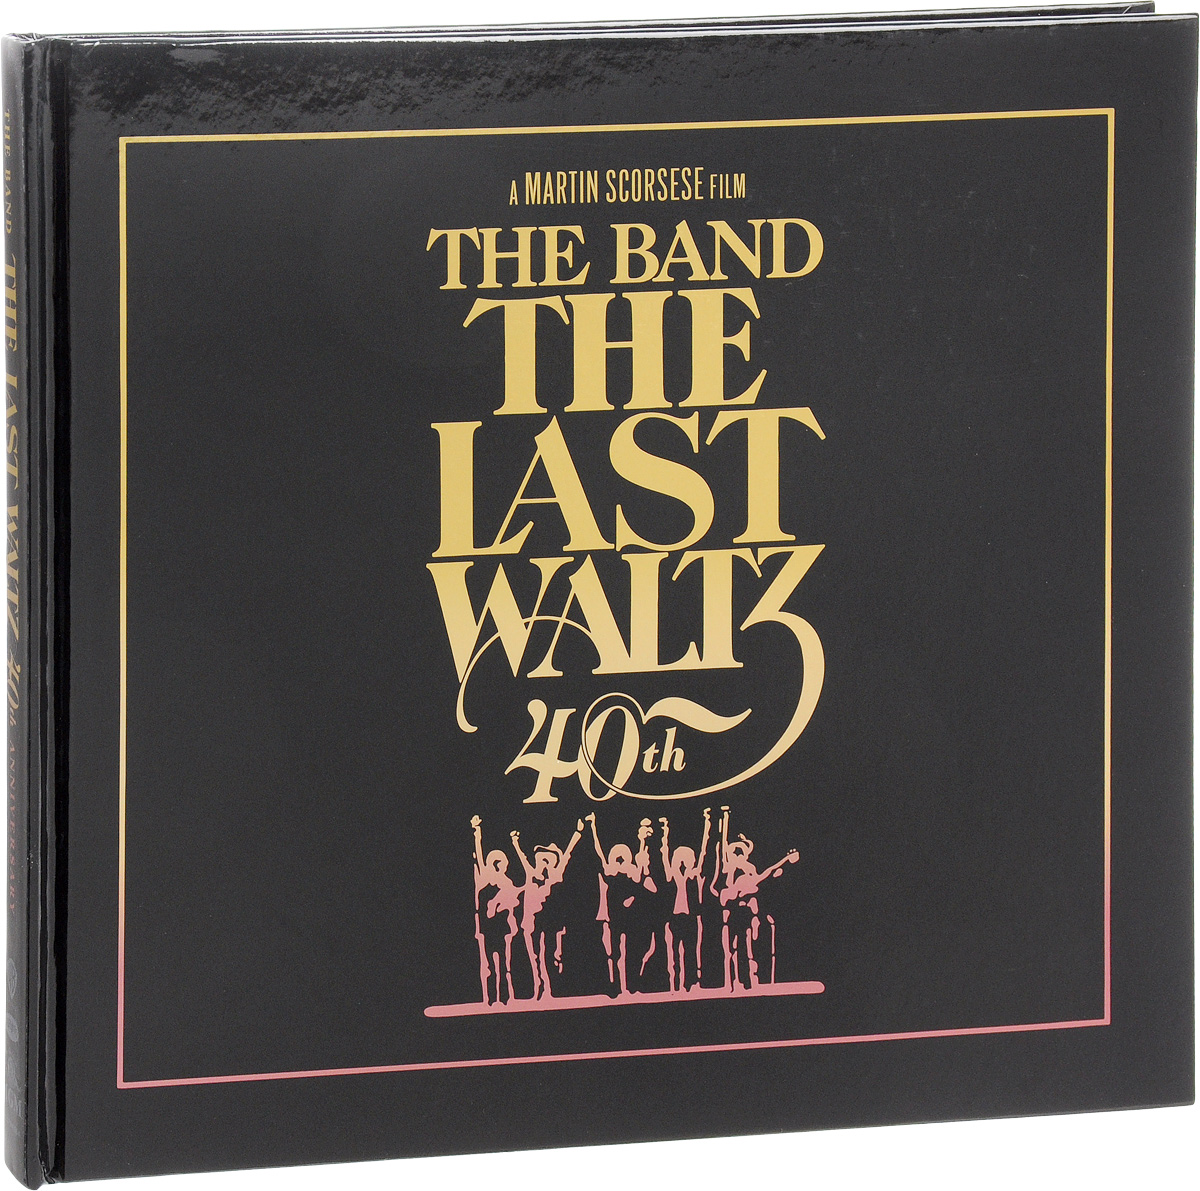 The Band The Band. The Last Waltz. 40th Anniversary Edition (4 CD + Blu-ray)